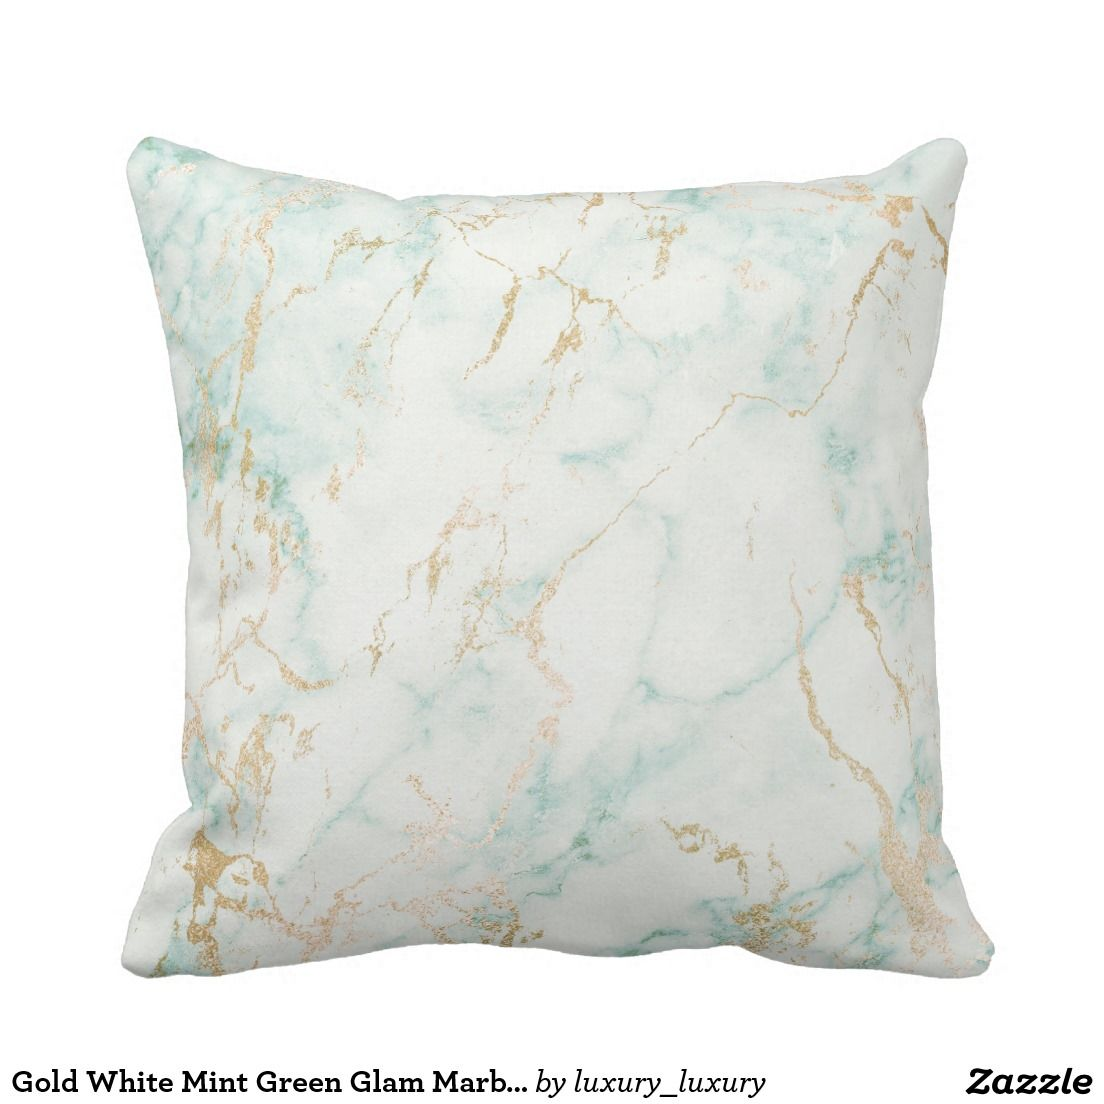 gold white mint green glam marble decor throw pillow | marble home